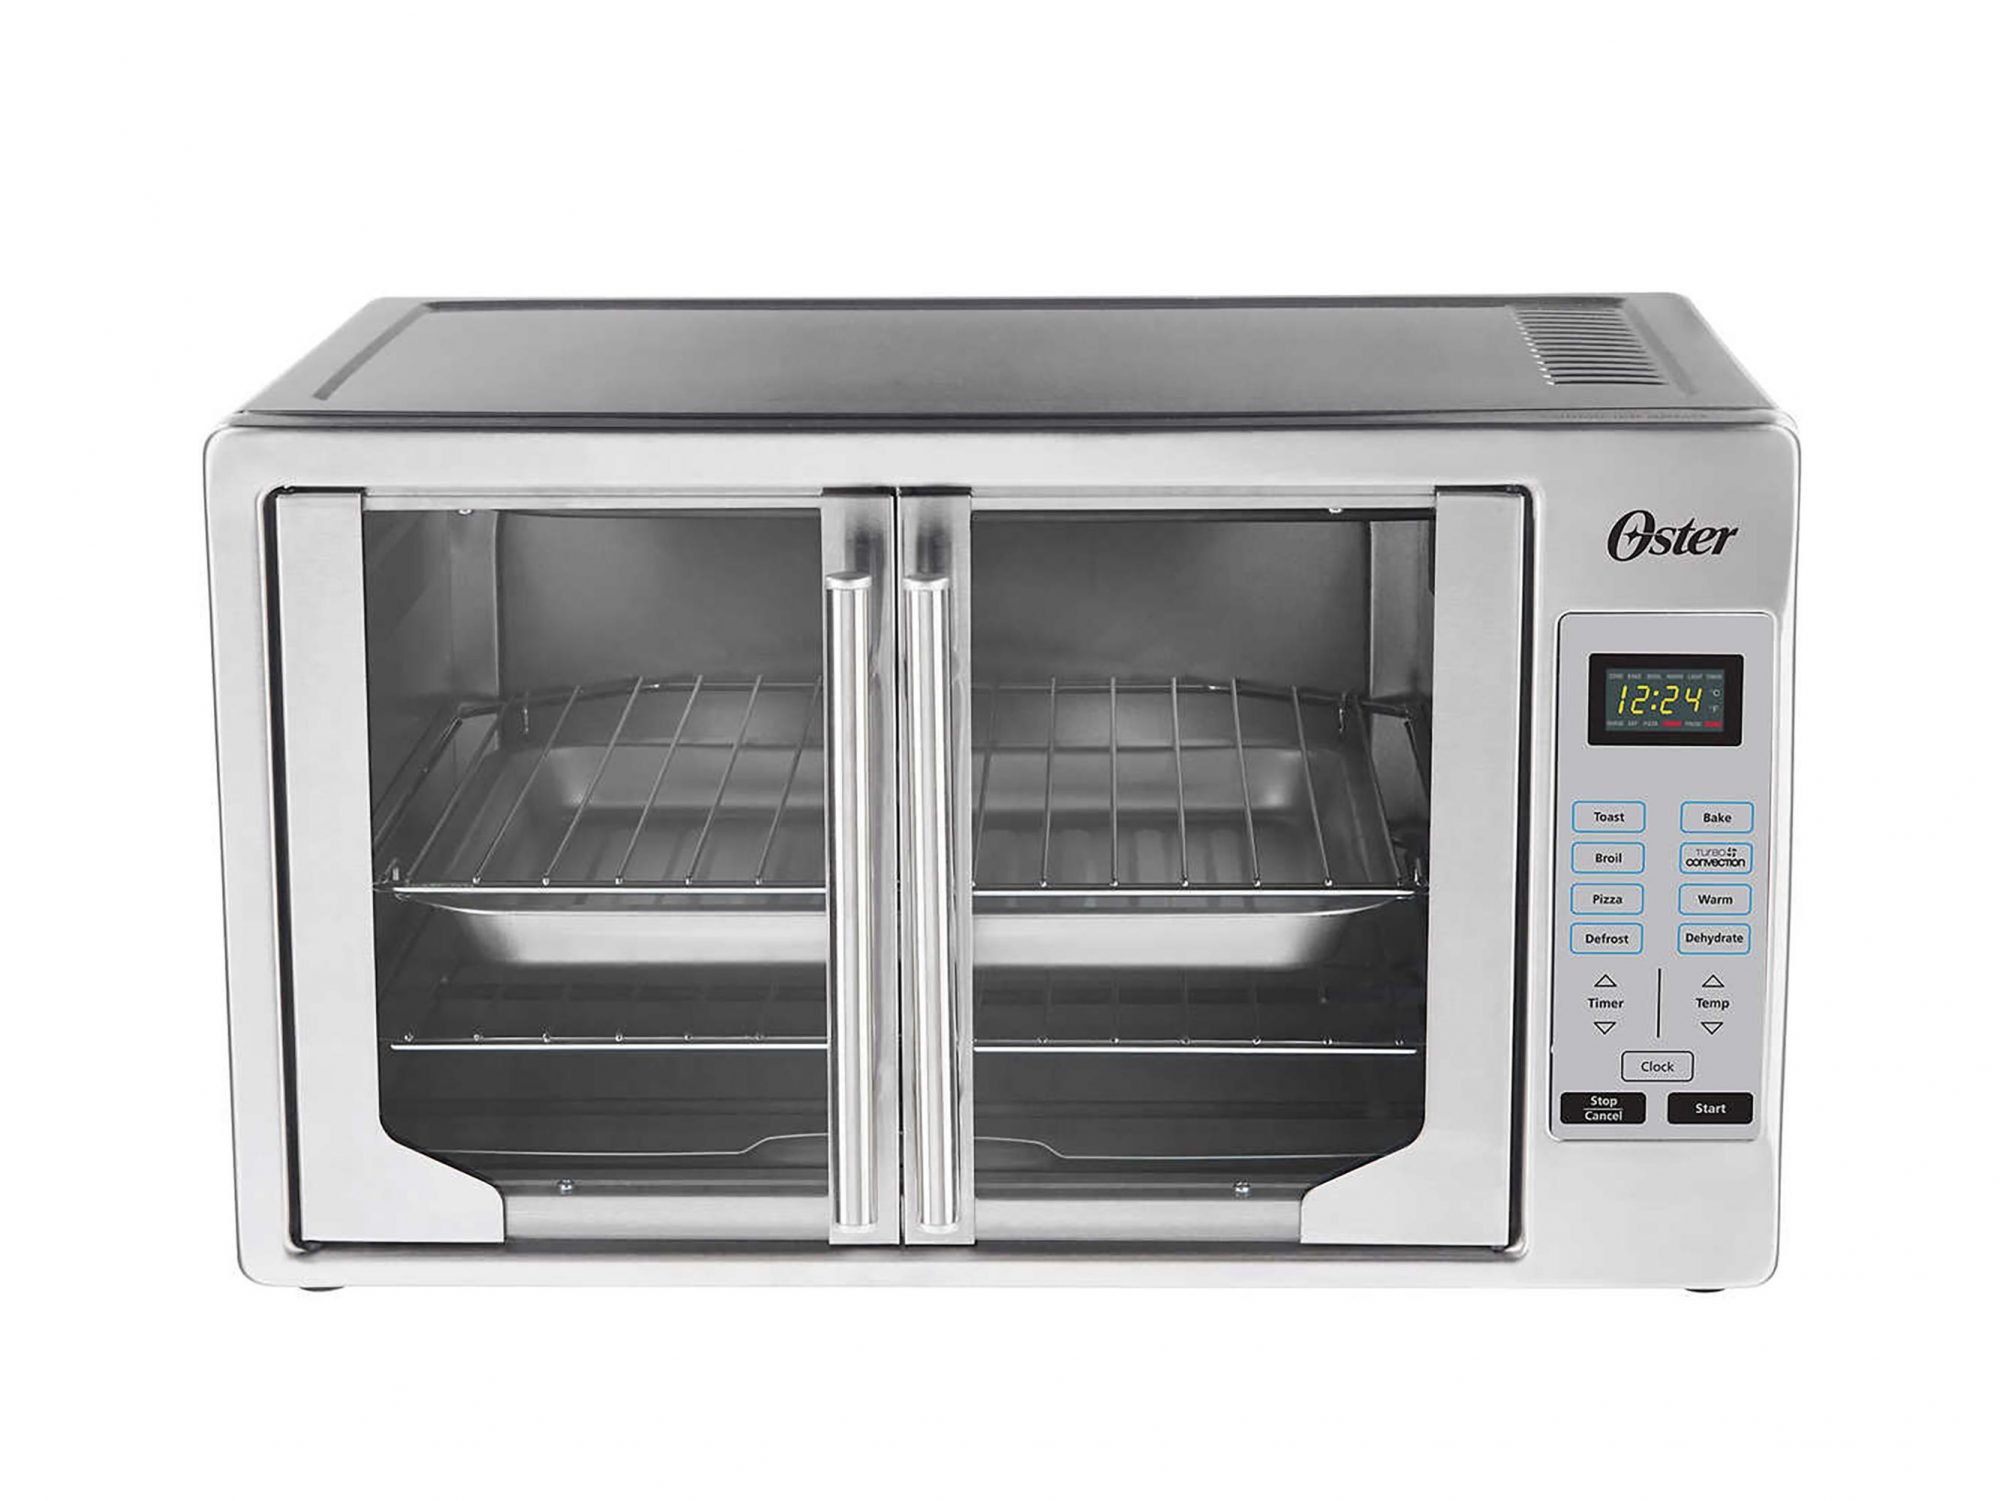 6 November Sale Items Every Costco Shopper Should Know About 1810w-Oster-Oven